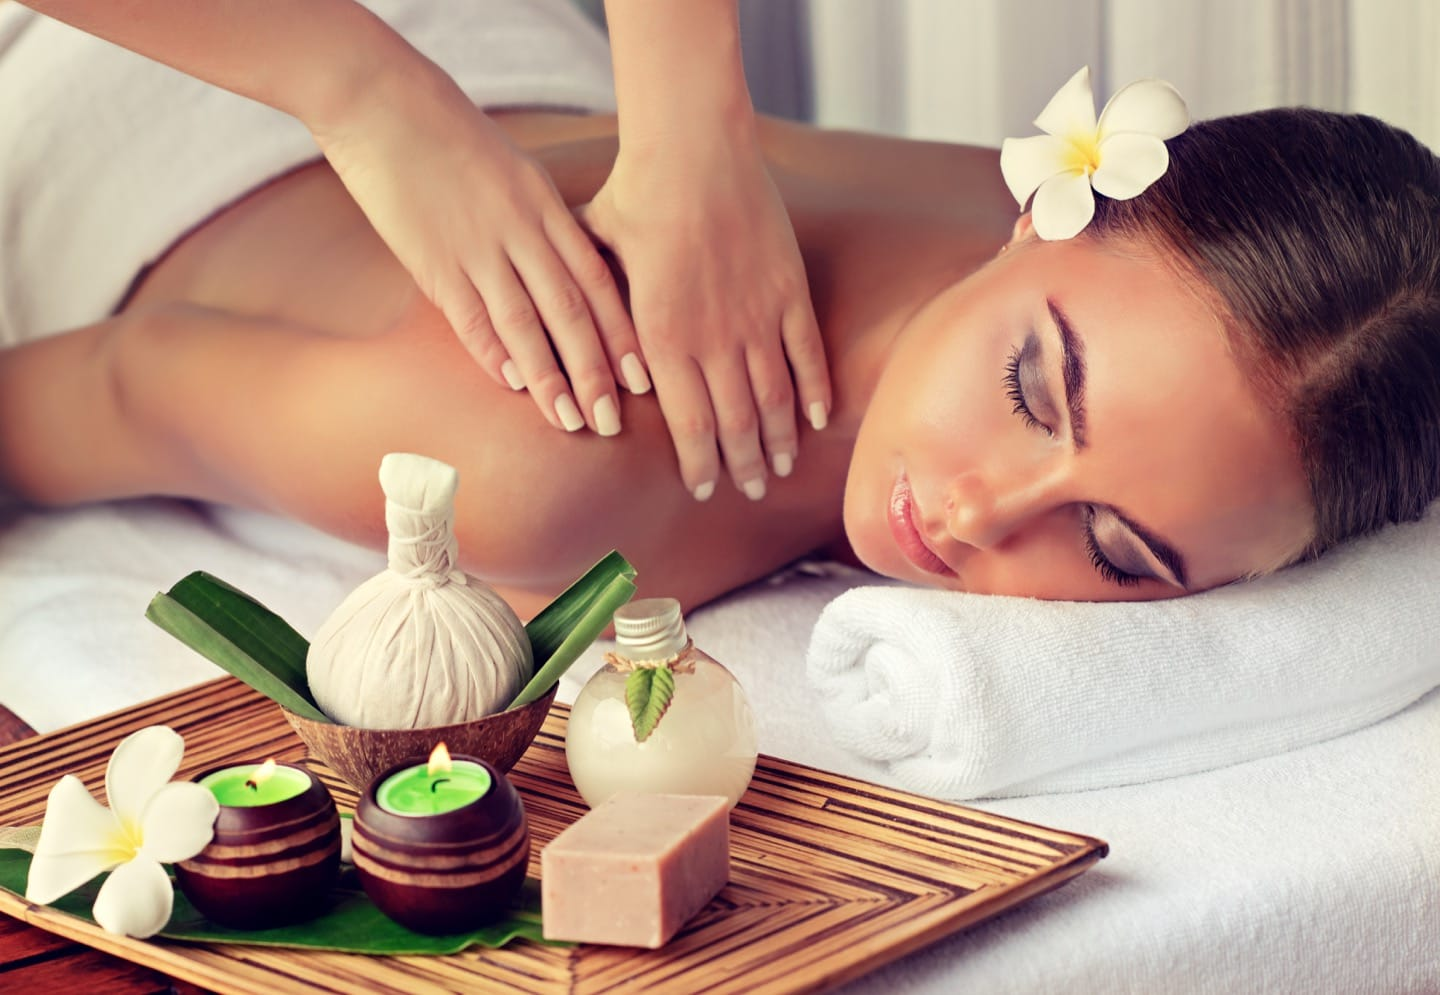 get a massage to relax and alleviate body pains